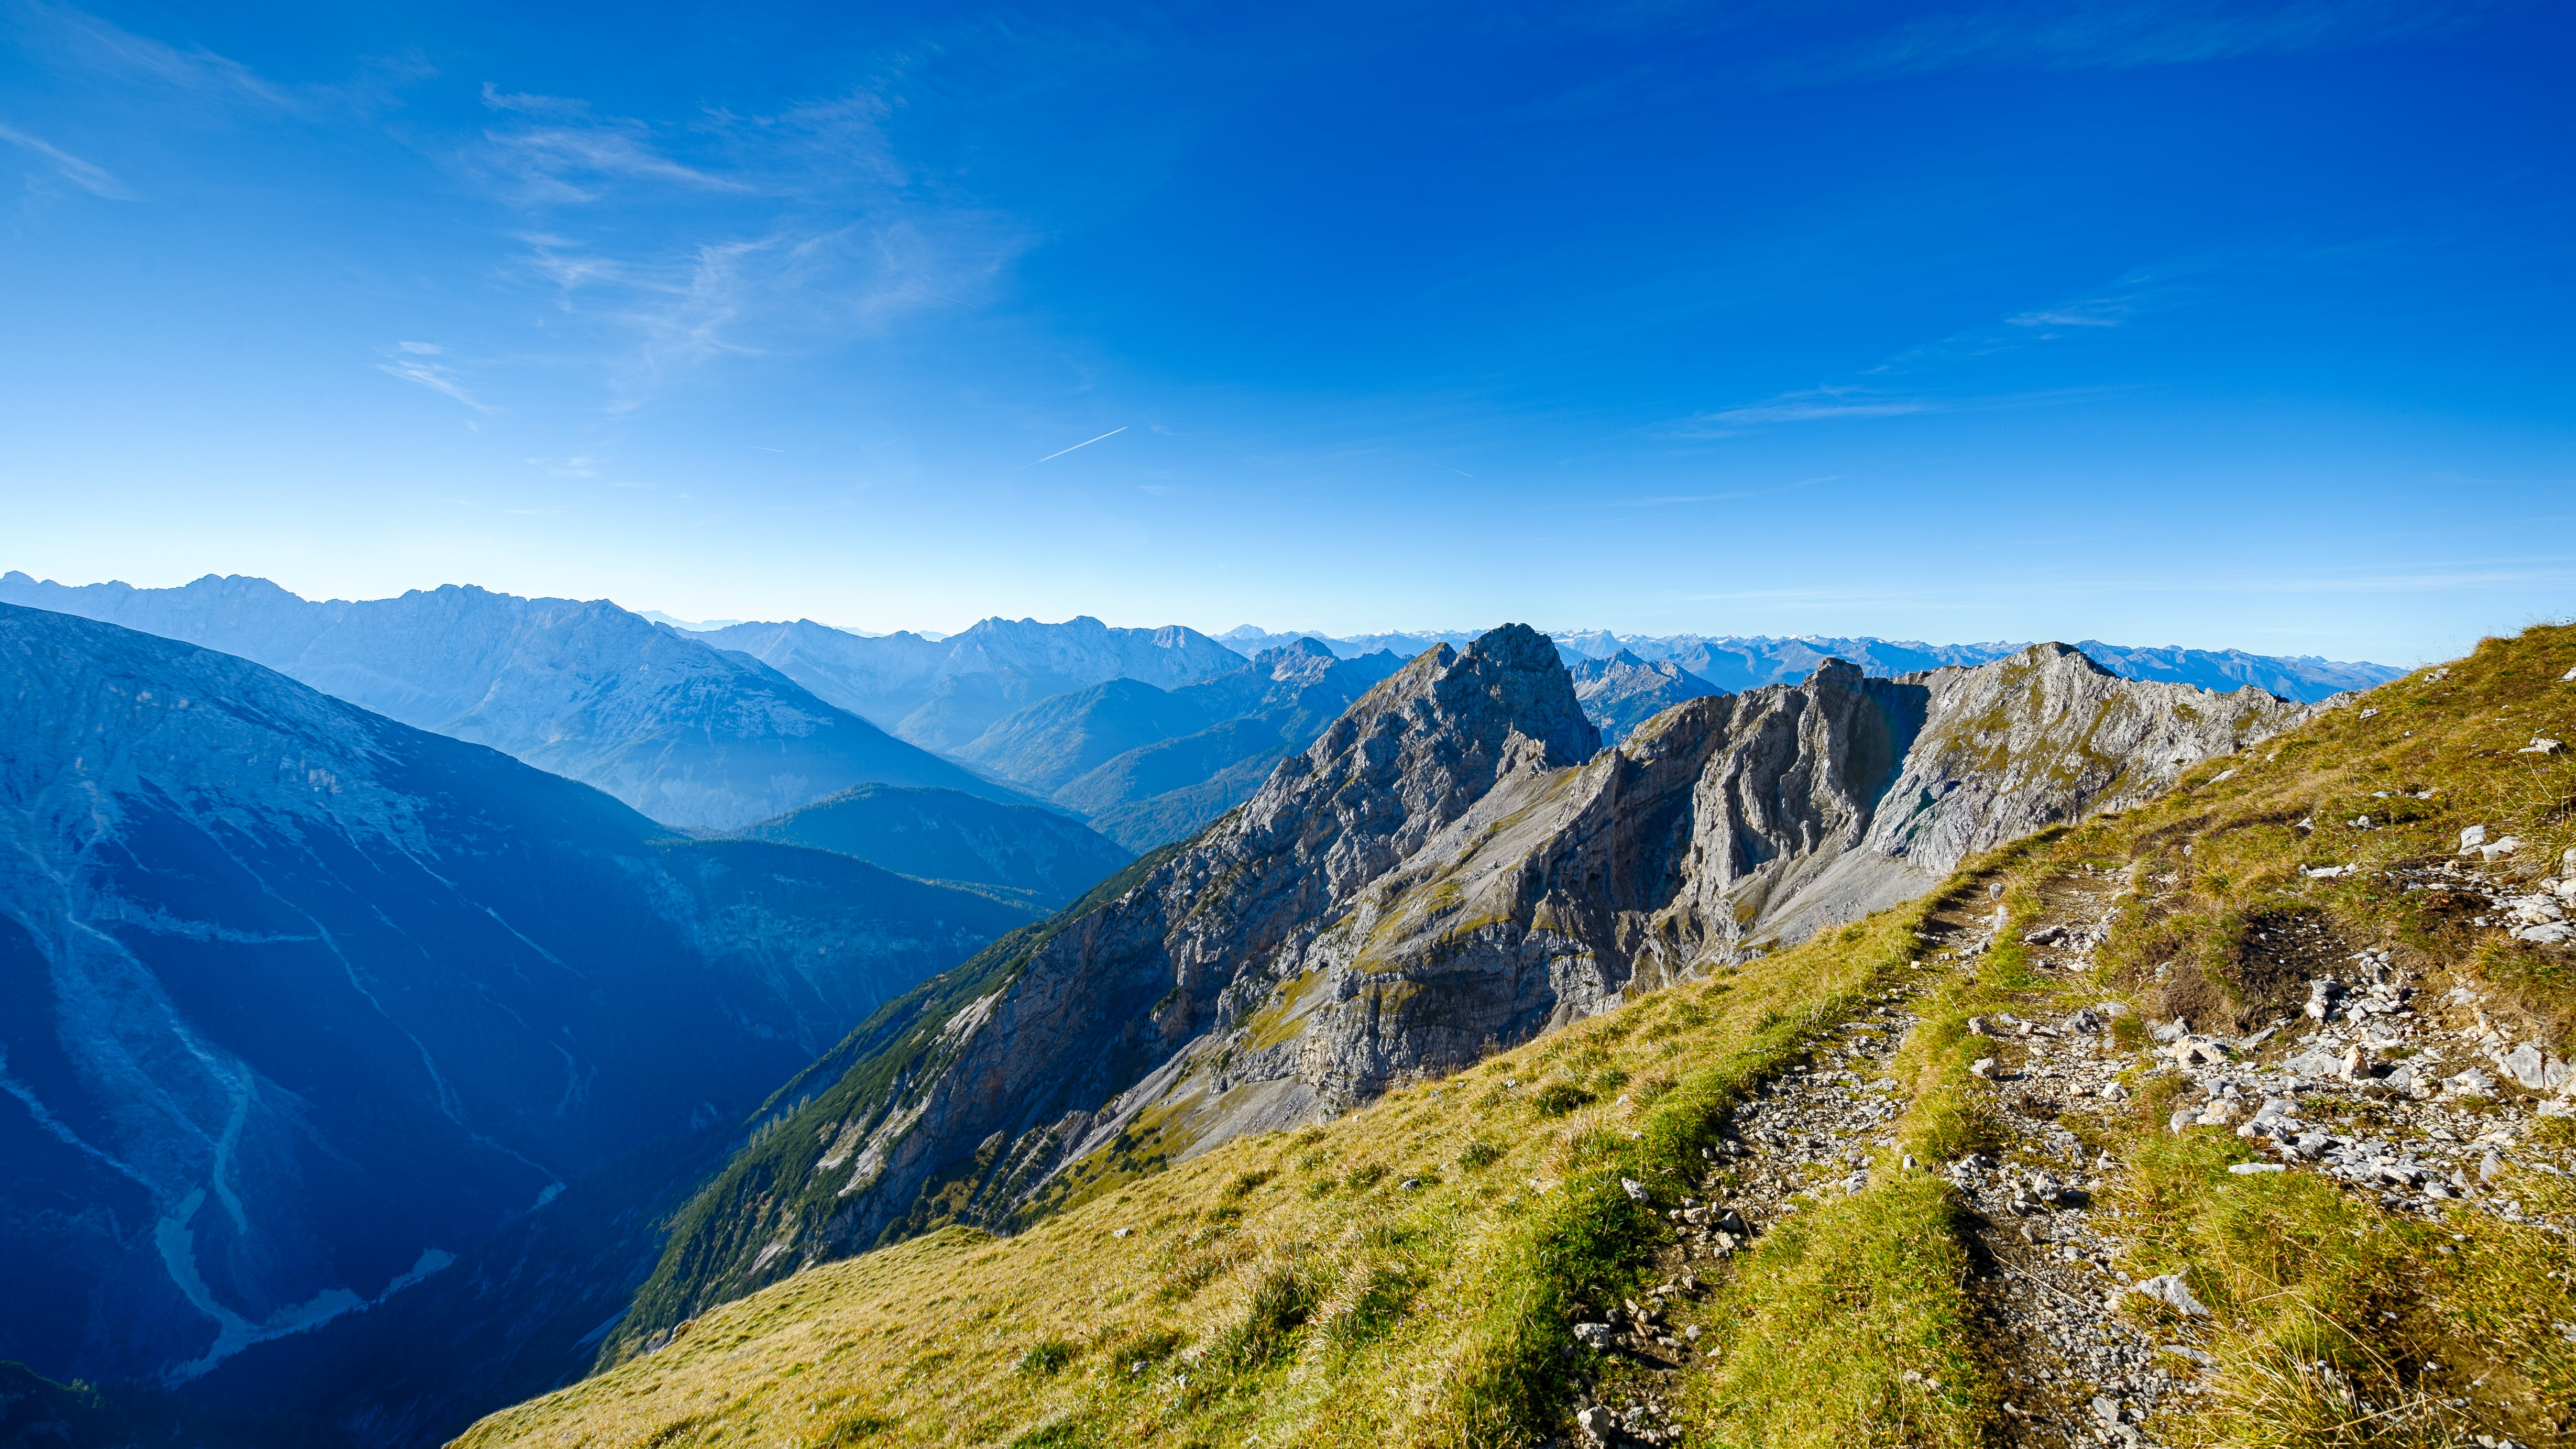 Free stock photo of landscape, mountains, path, grass